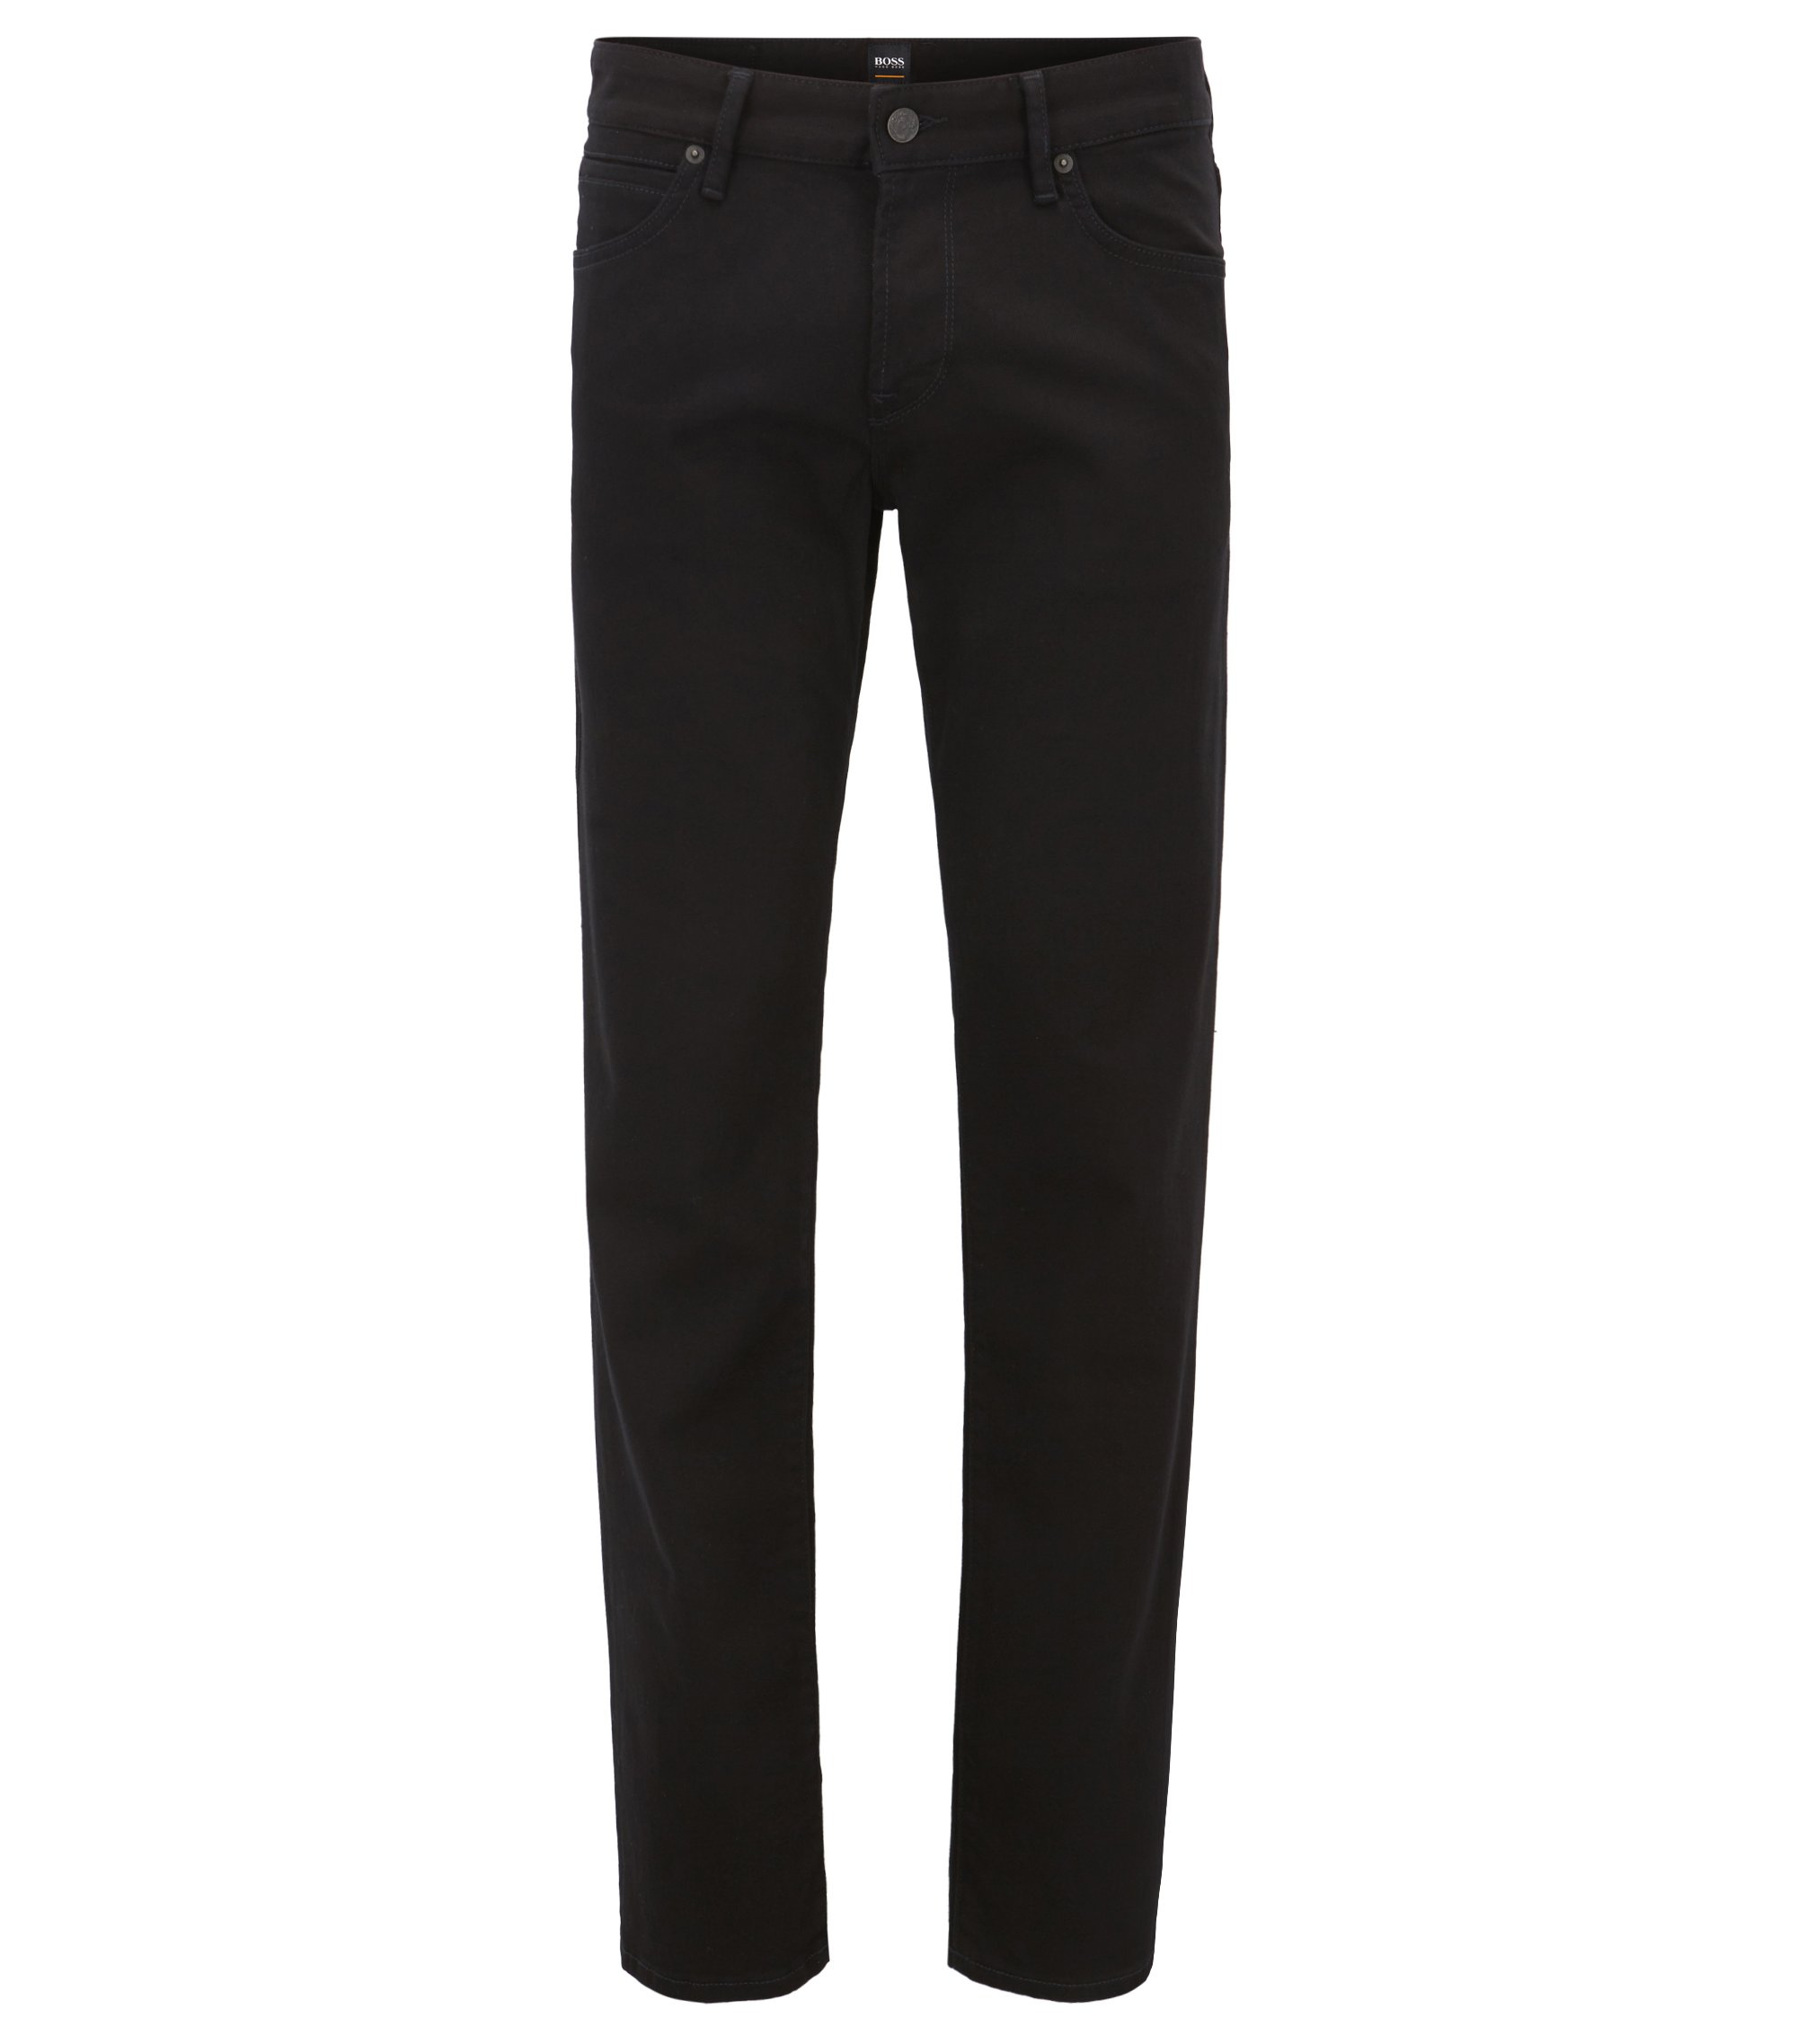 Jeans Regular Fit en denim noir Stay Black, Noir